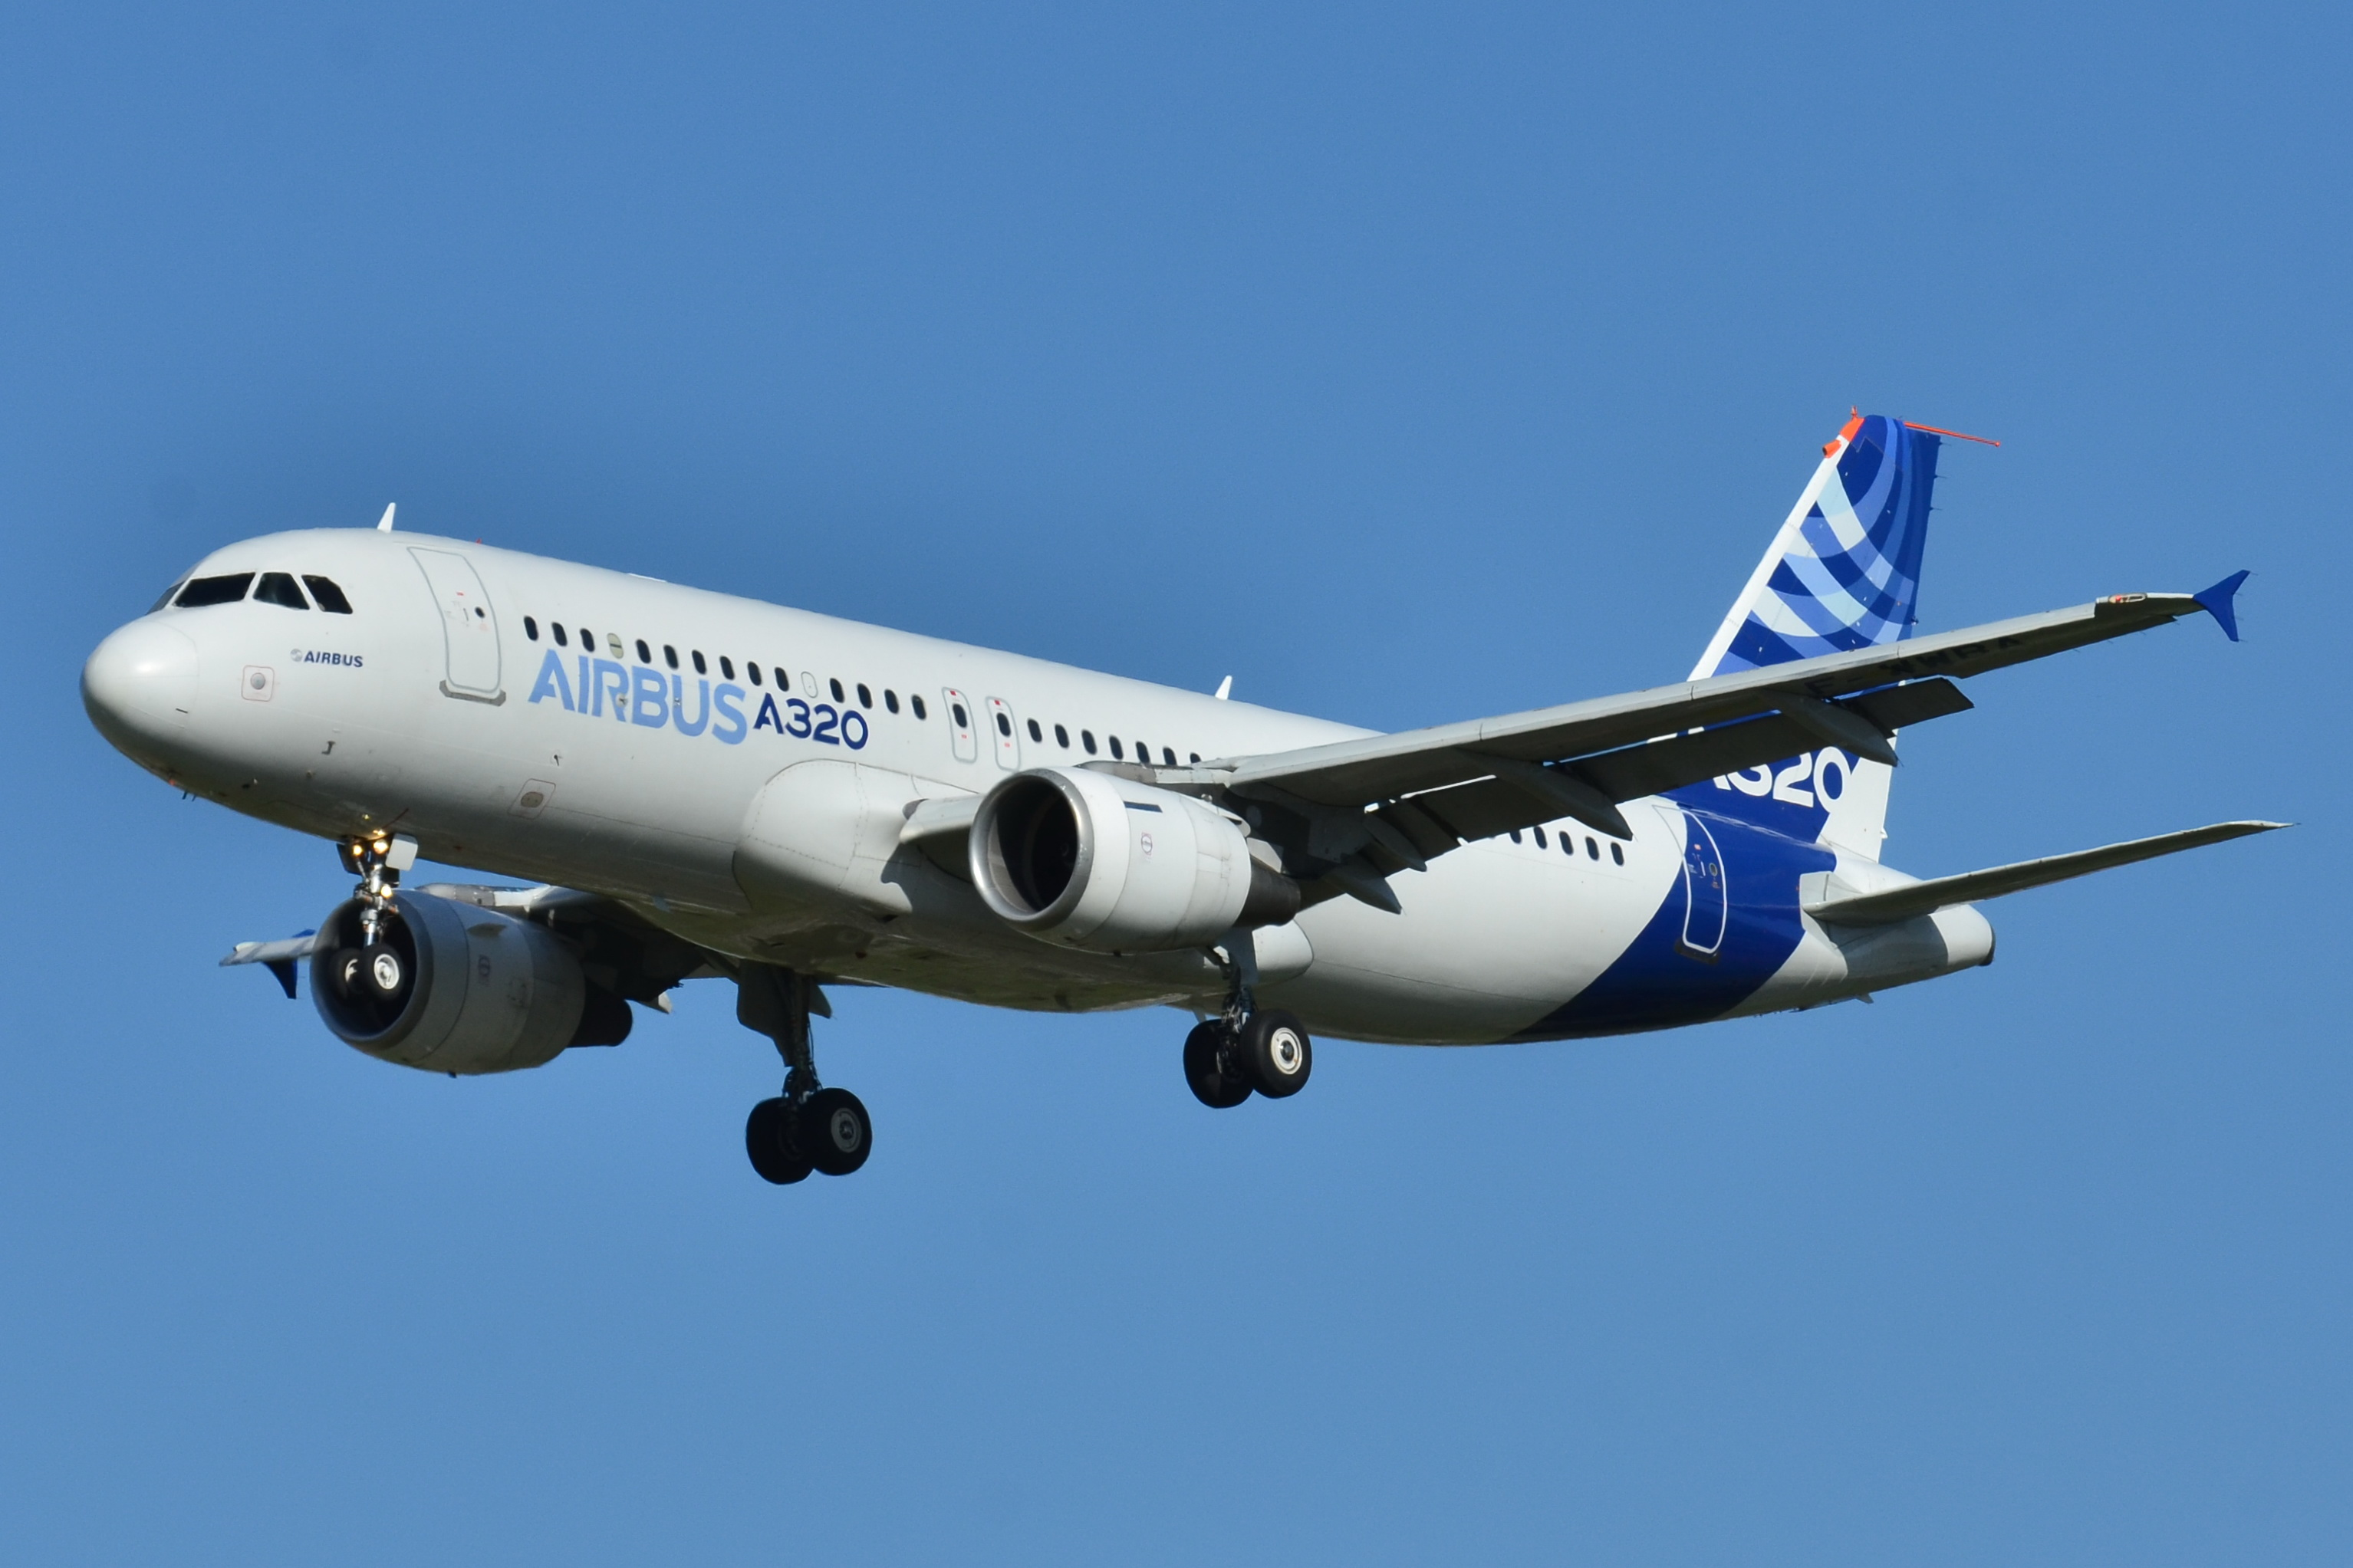 AIRBUS A320 FOR SALE: 1 X 1999 AIRBUS A320-212 FOR SALE & USD 2 X 2003 AIRBUS A320-232 FOR SALE.